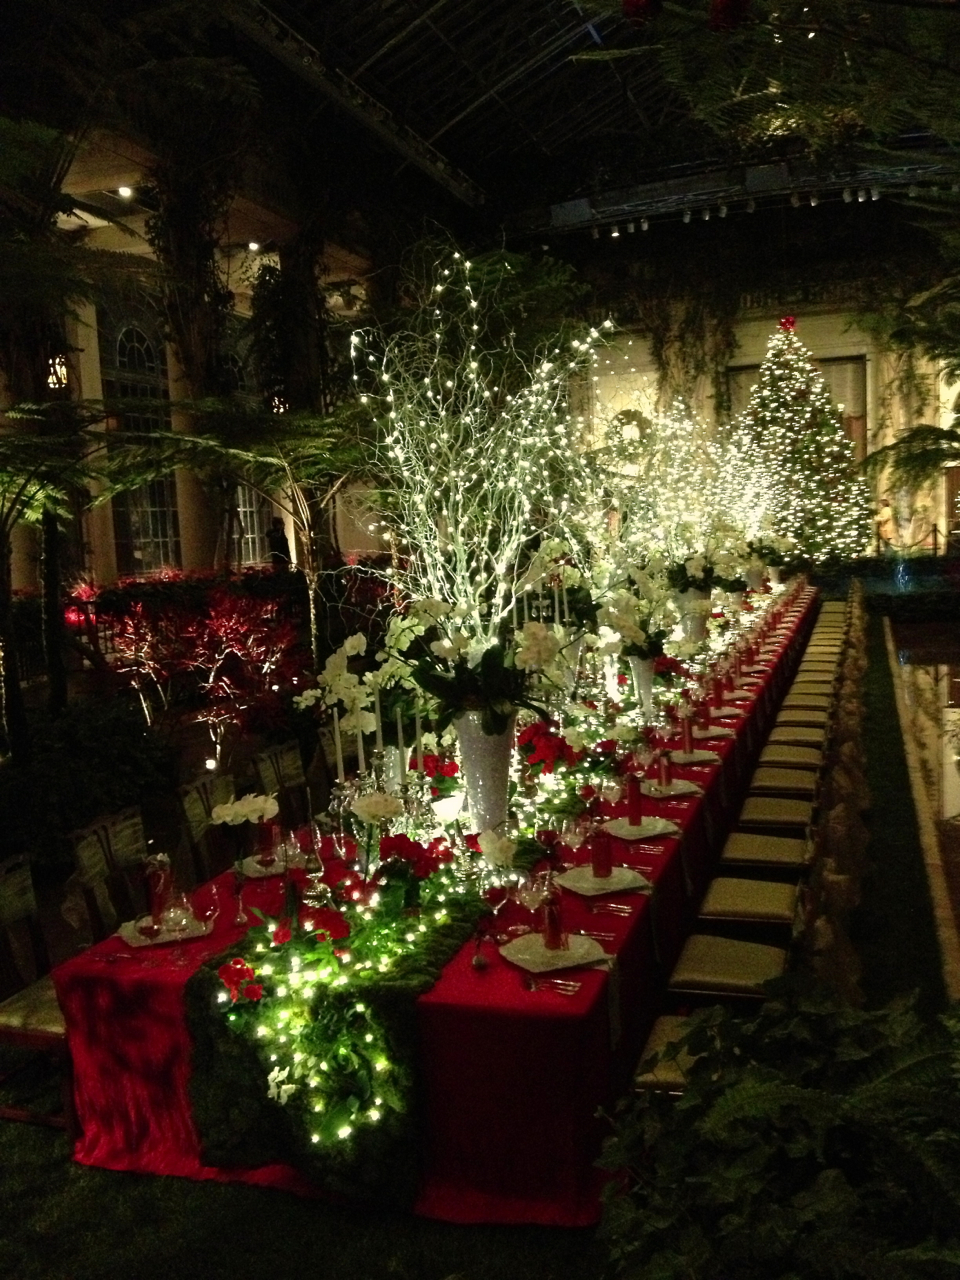 Tips For Visiting Longwood Gardens 2012 Holiday Exhibit